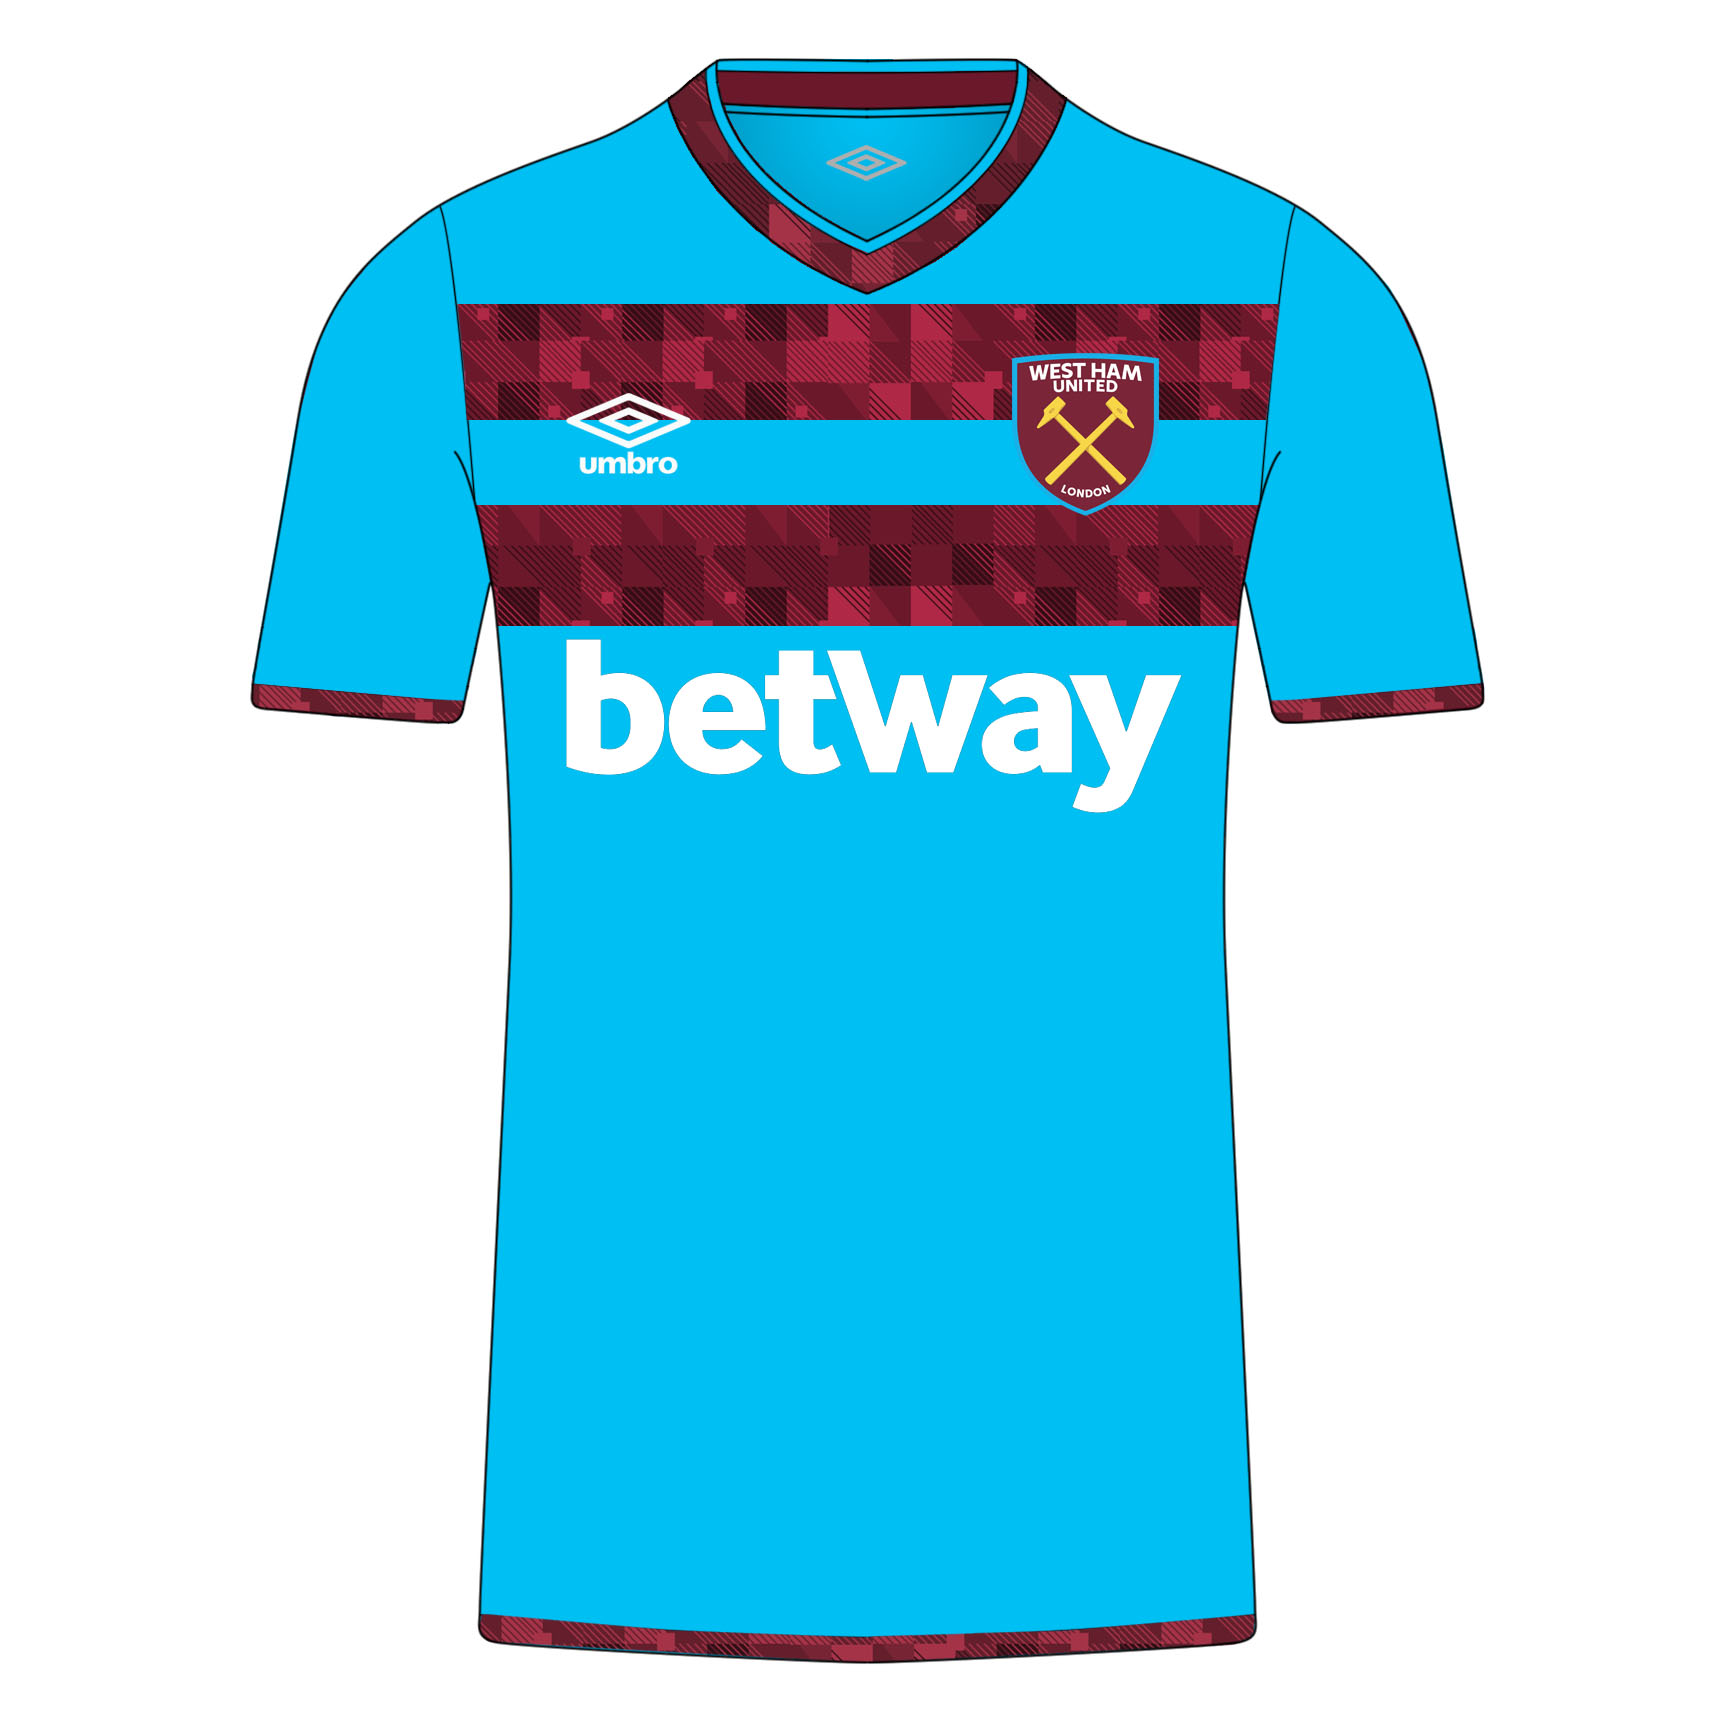 low priced 24fe6 02e44 West Ham 18/19 Away kit